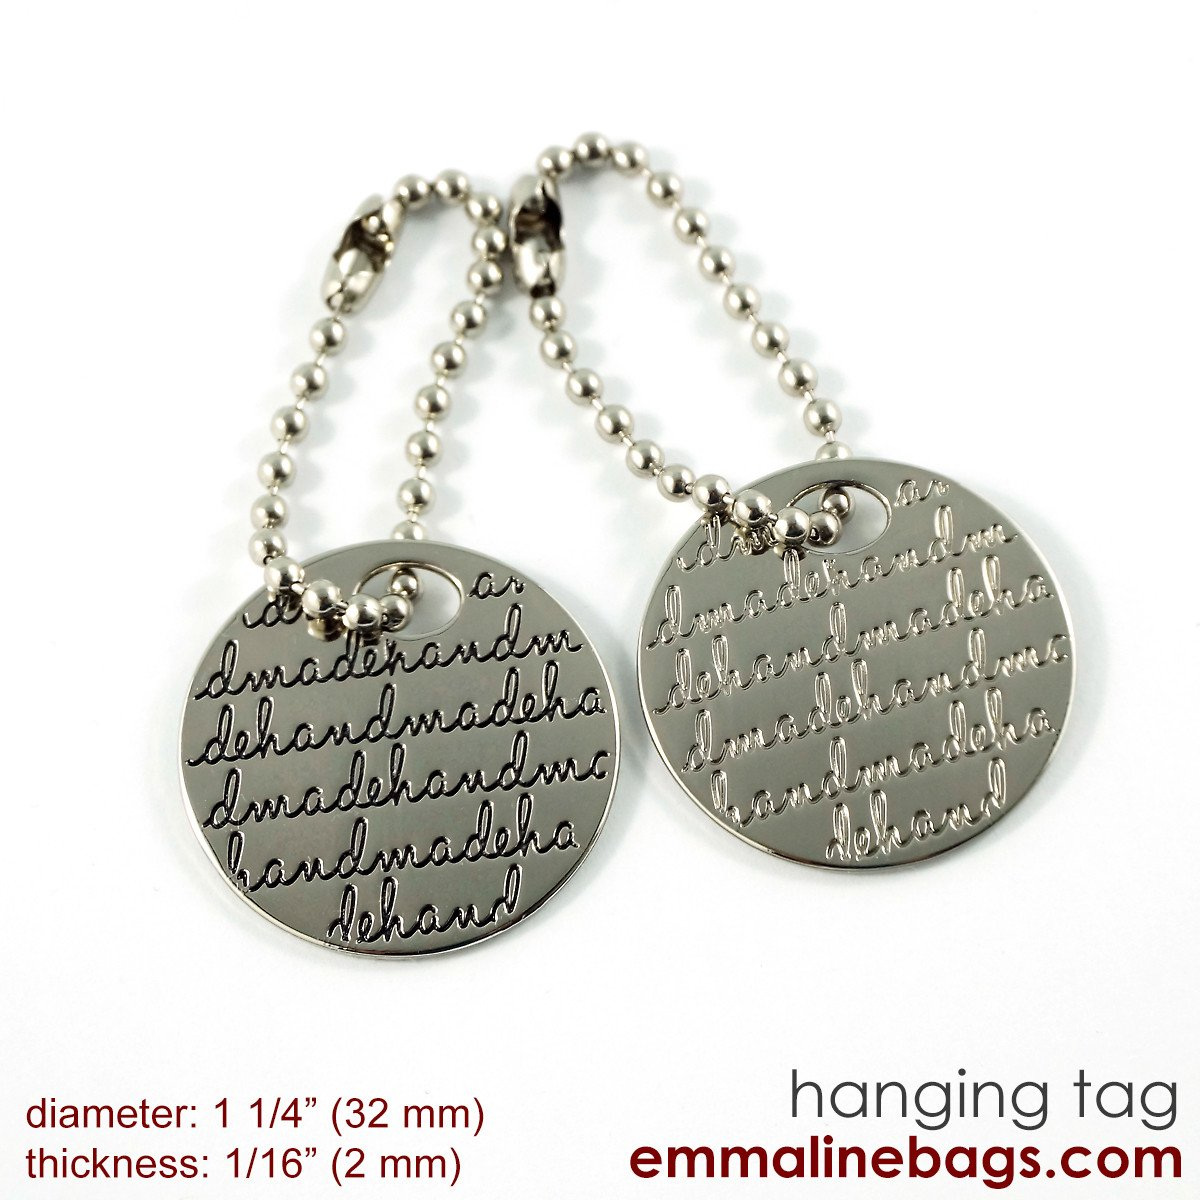 Emmaline - Bag Tag For Purses  - Silver With Black Letters